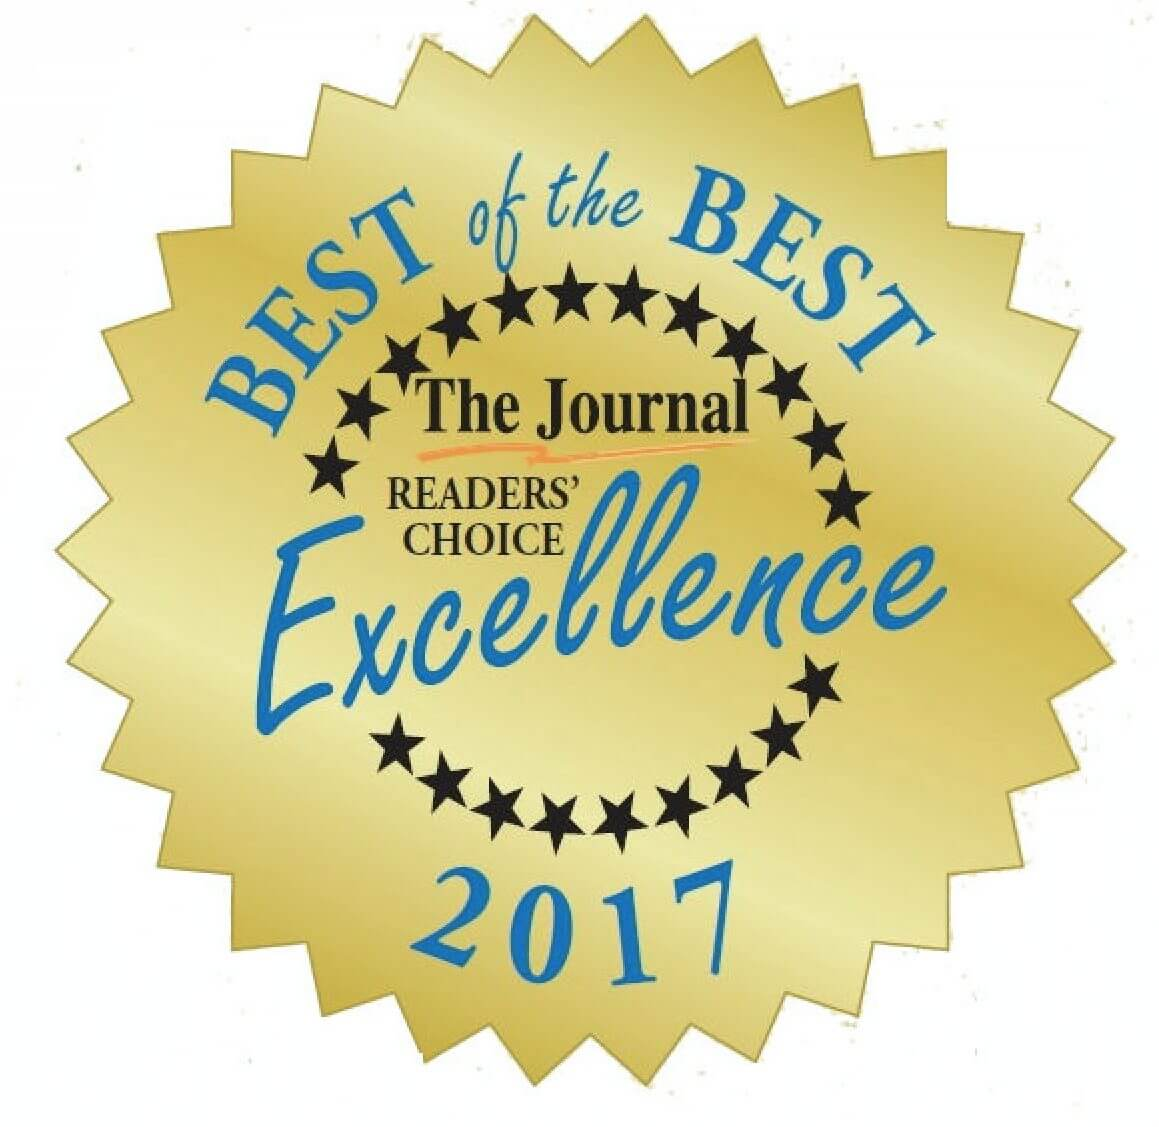 The Journal best of the best 2017